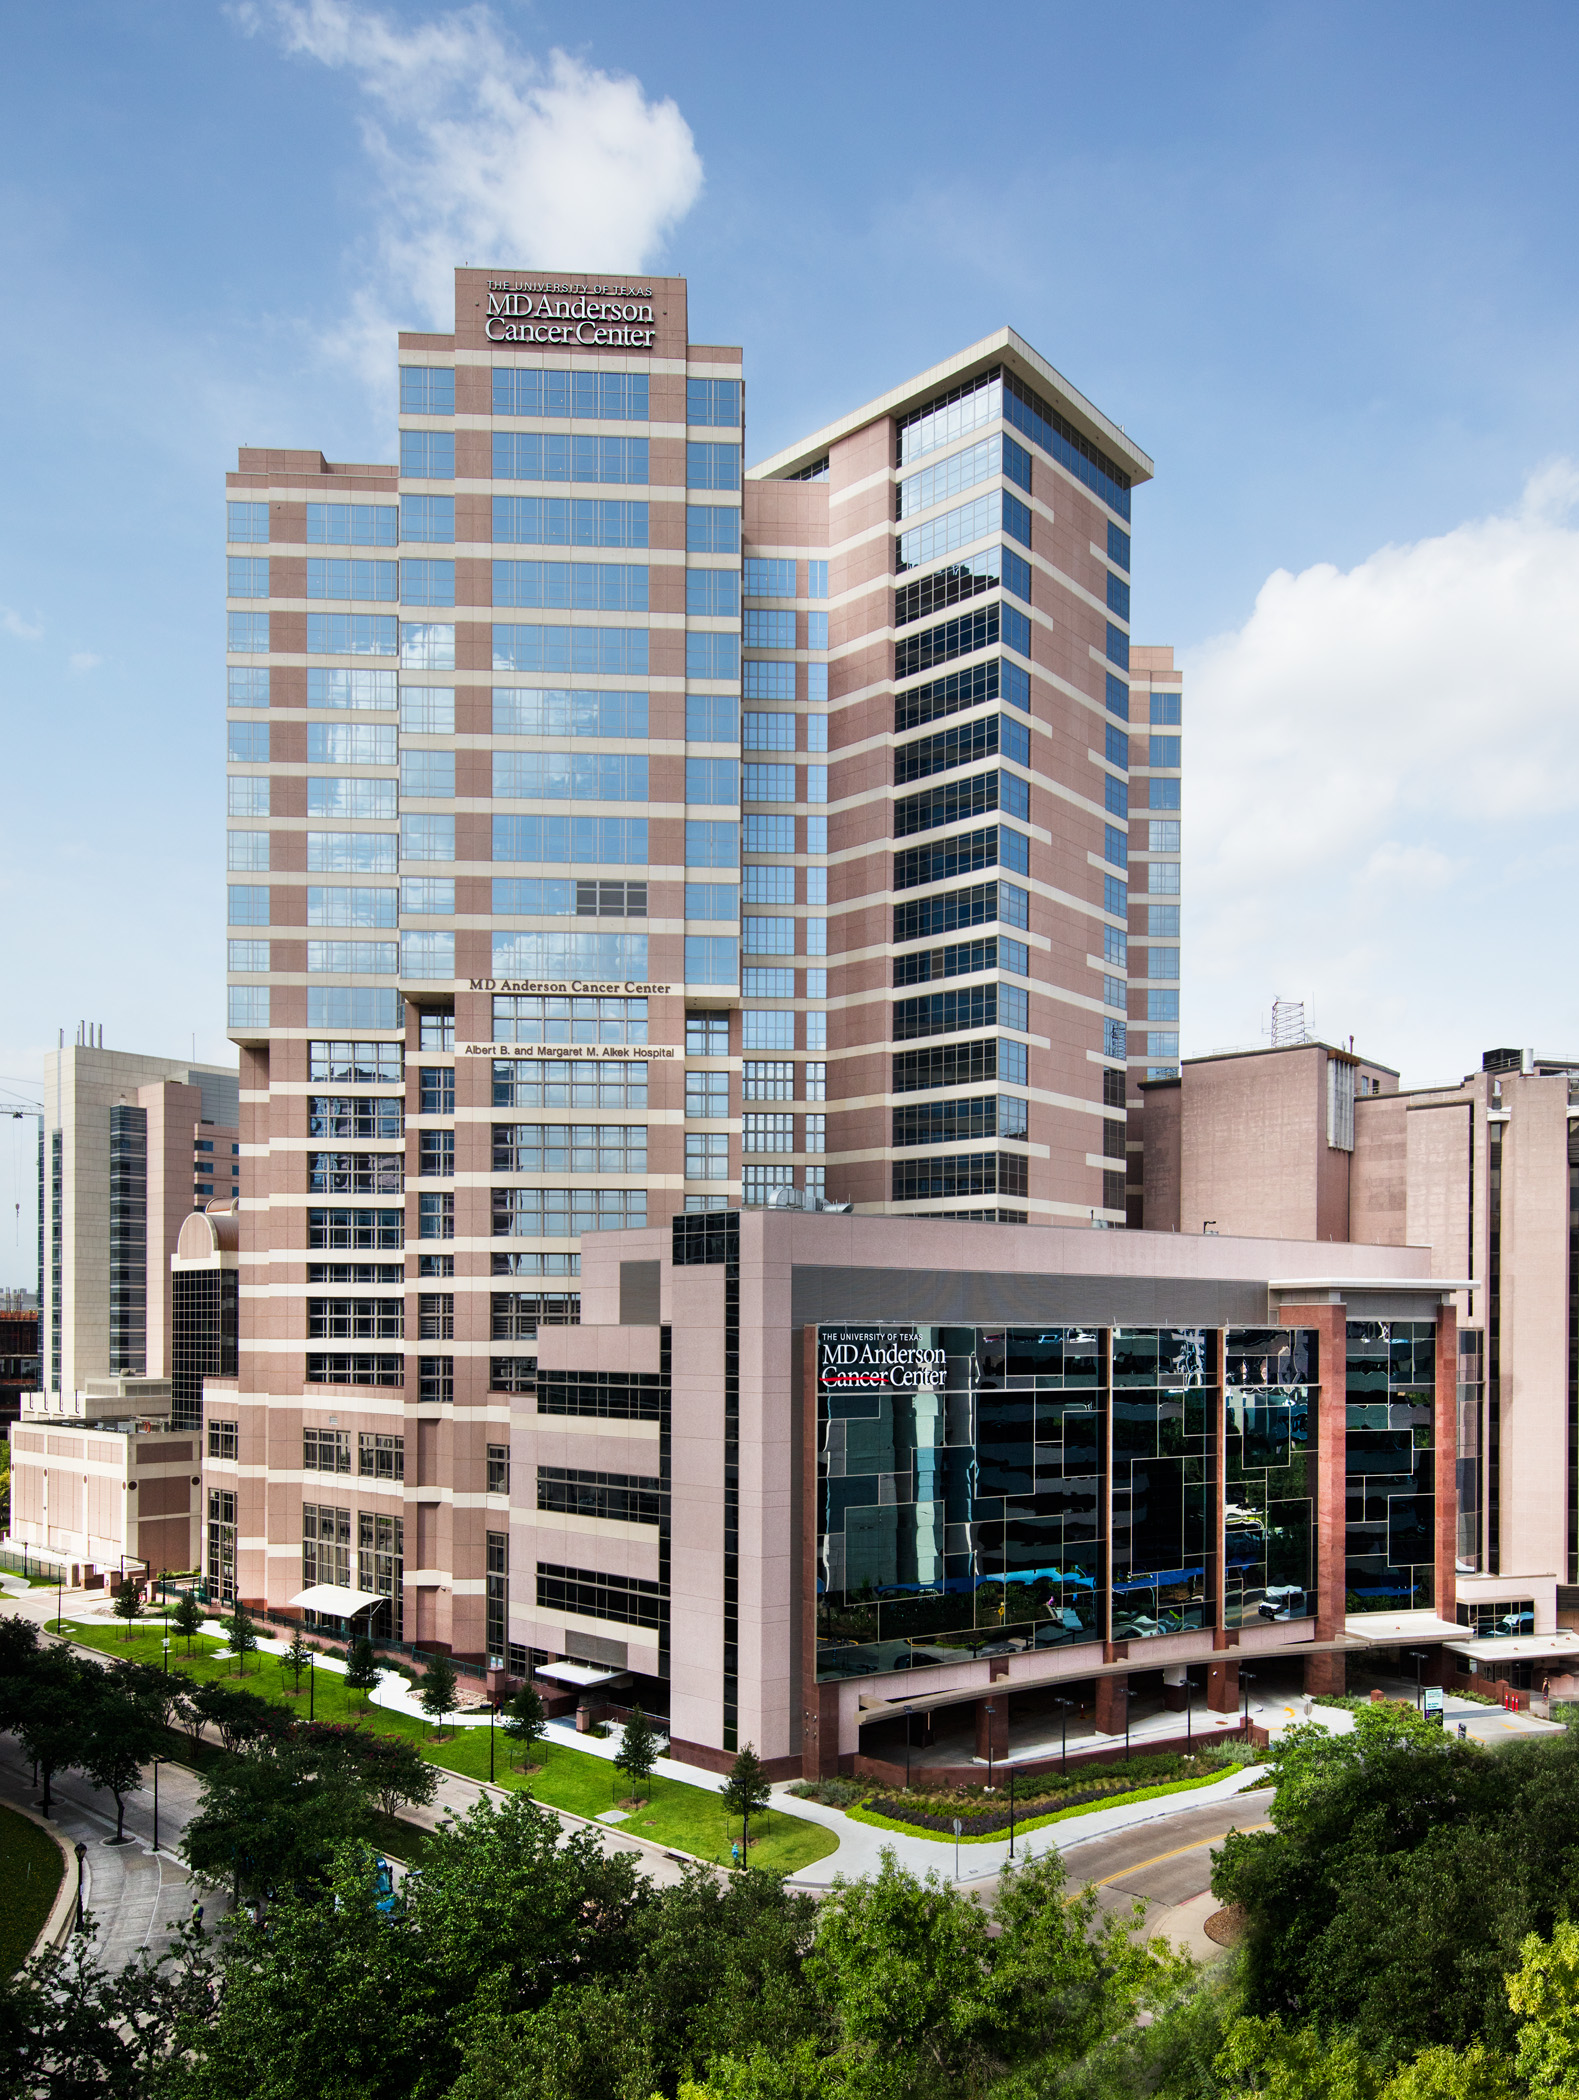 University of texas md anderson cancer center 100 great hospitals in america 2017